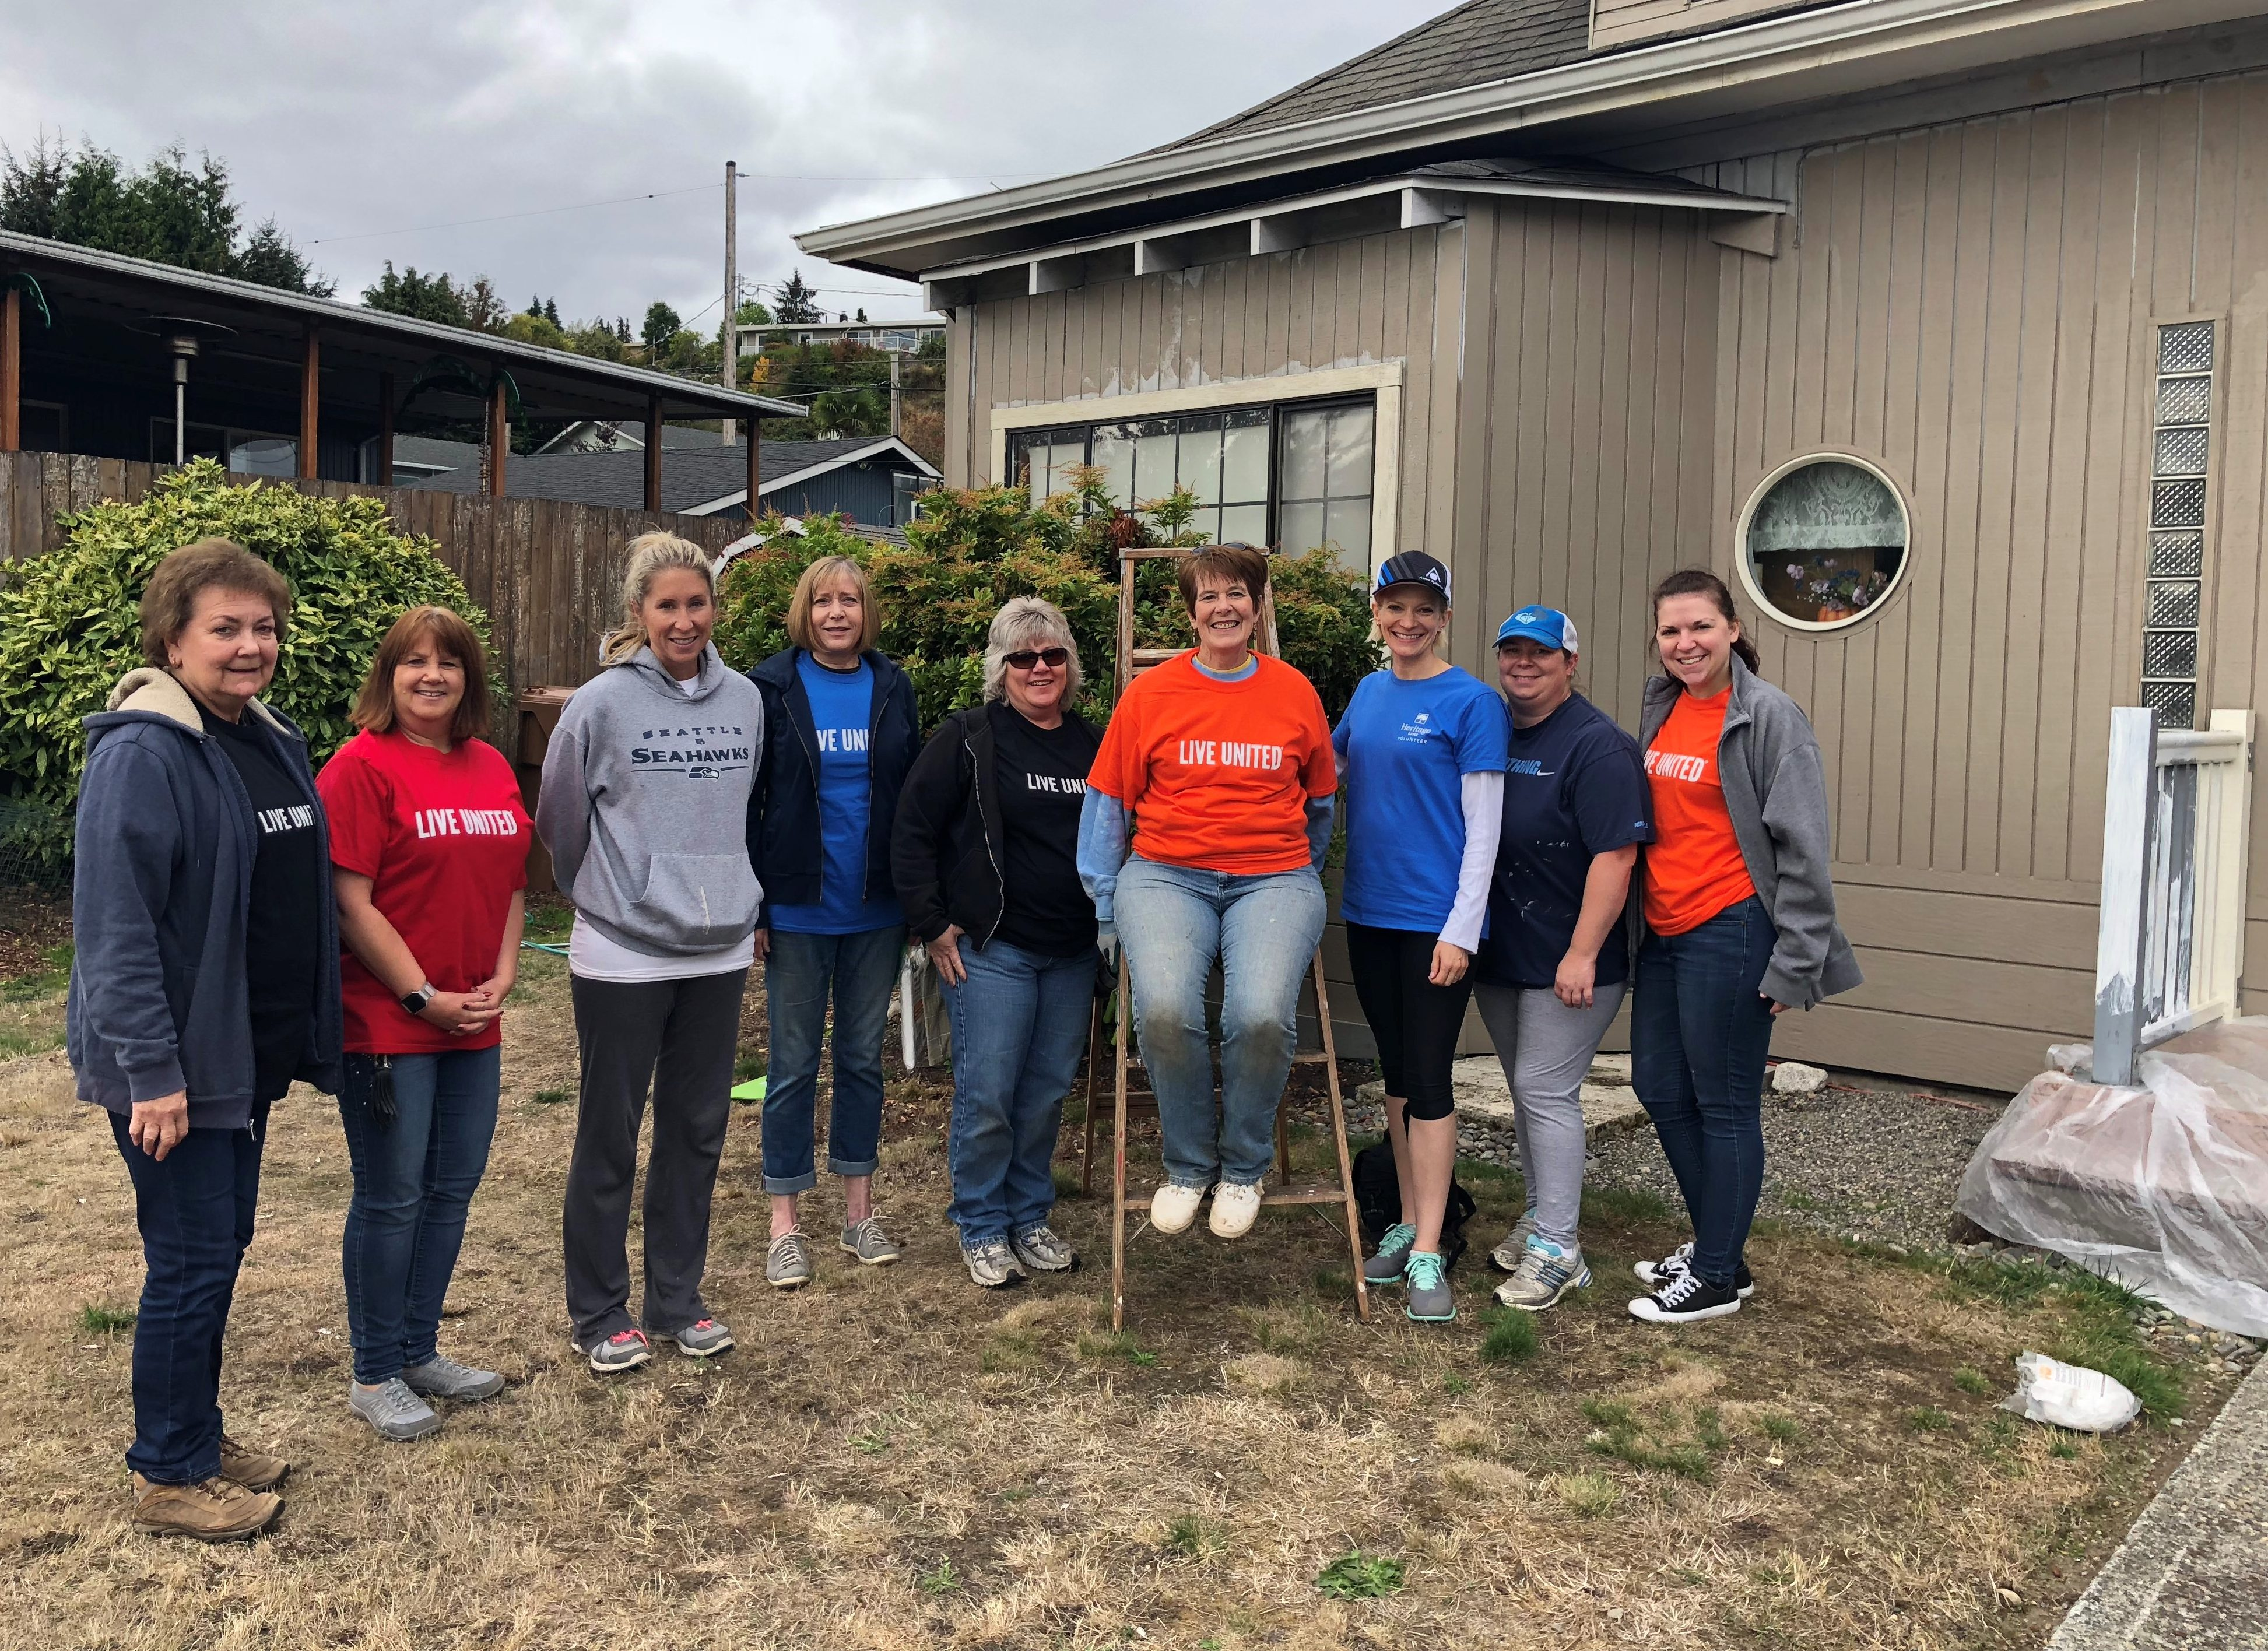 Group photo of Heritage Bank employees at the United Way Day of Caring in Pierce County